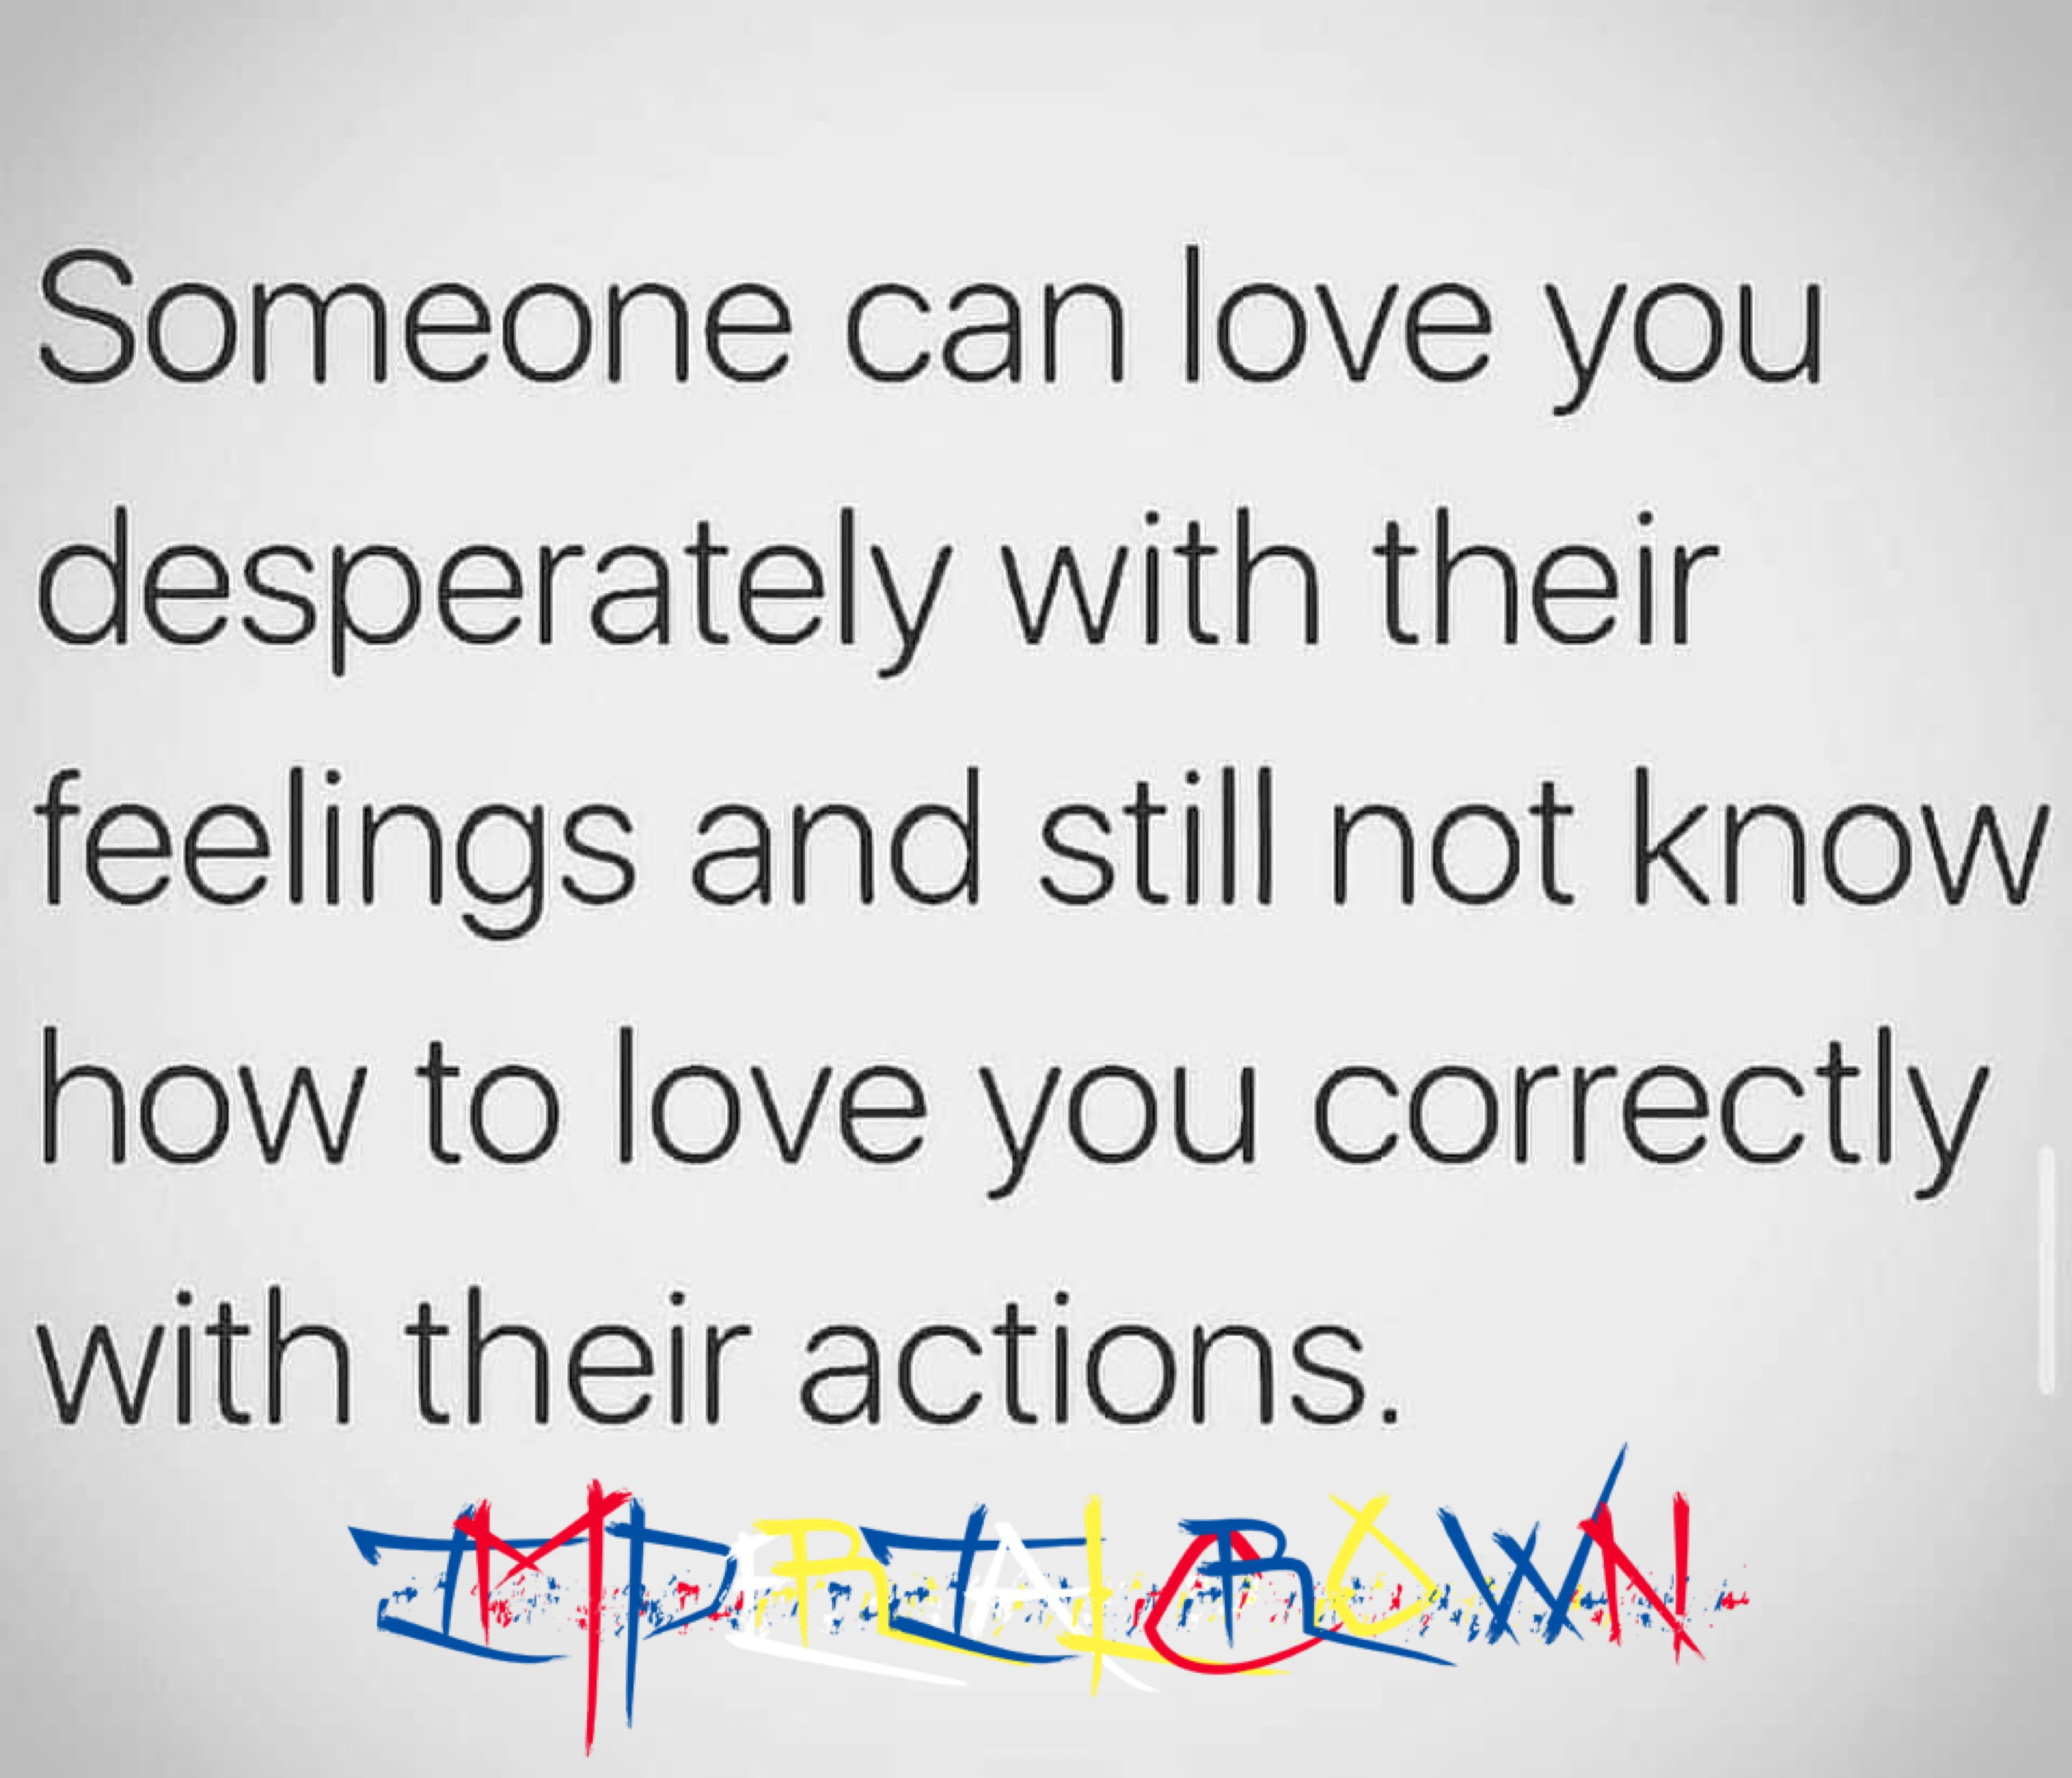 Someone can love you desperately with their feelings and still not know how to love you correctly with their actions